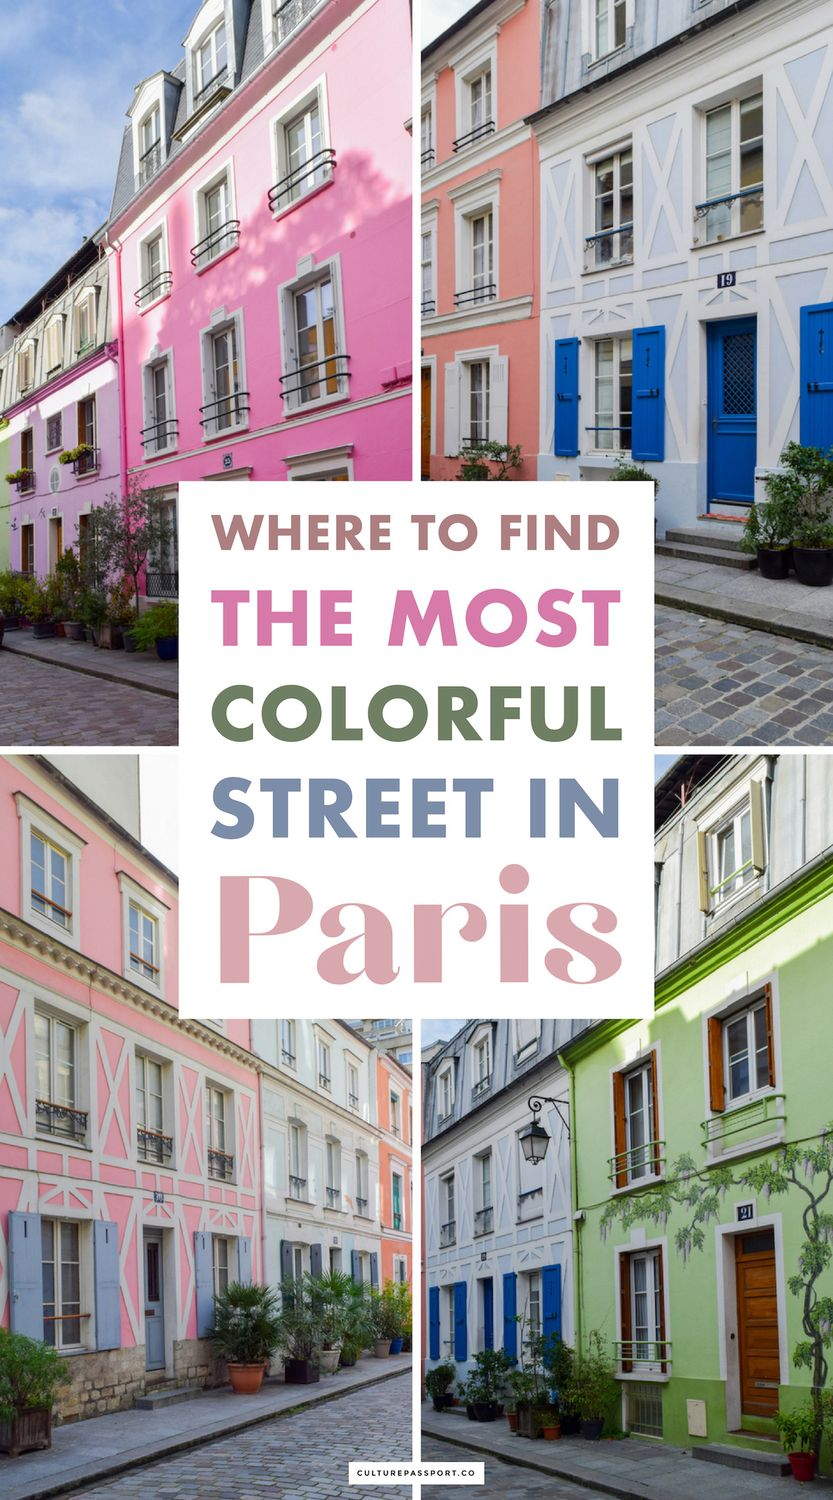 Where to Find the Most Colorful Street in Paris: Rue Crémieux